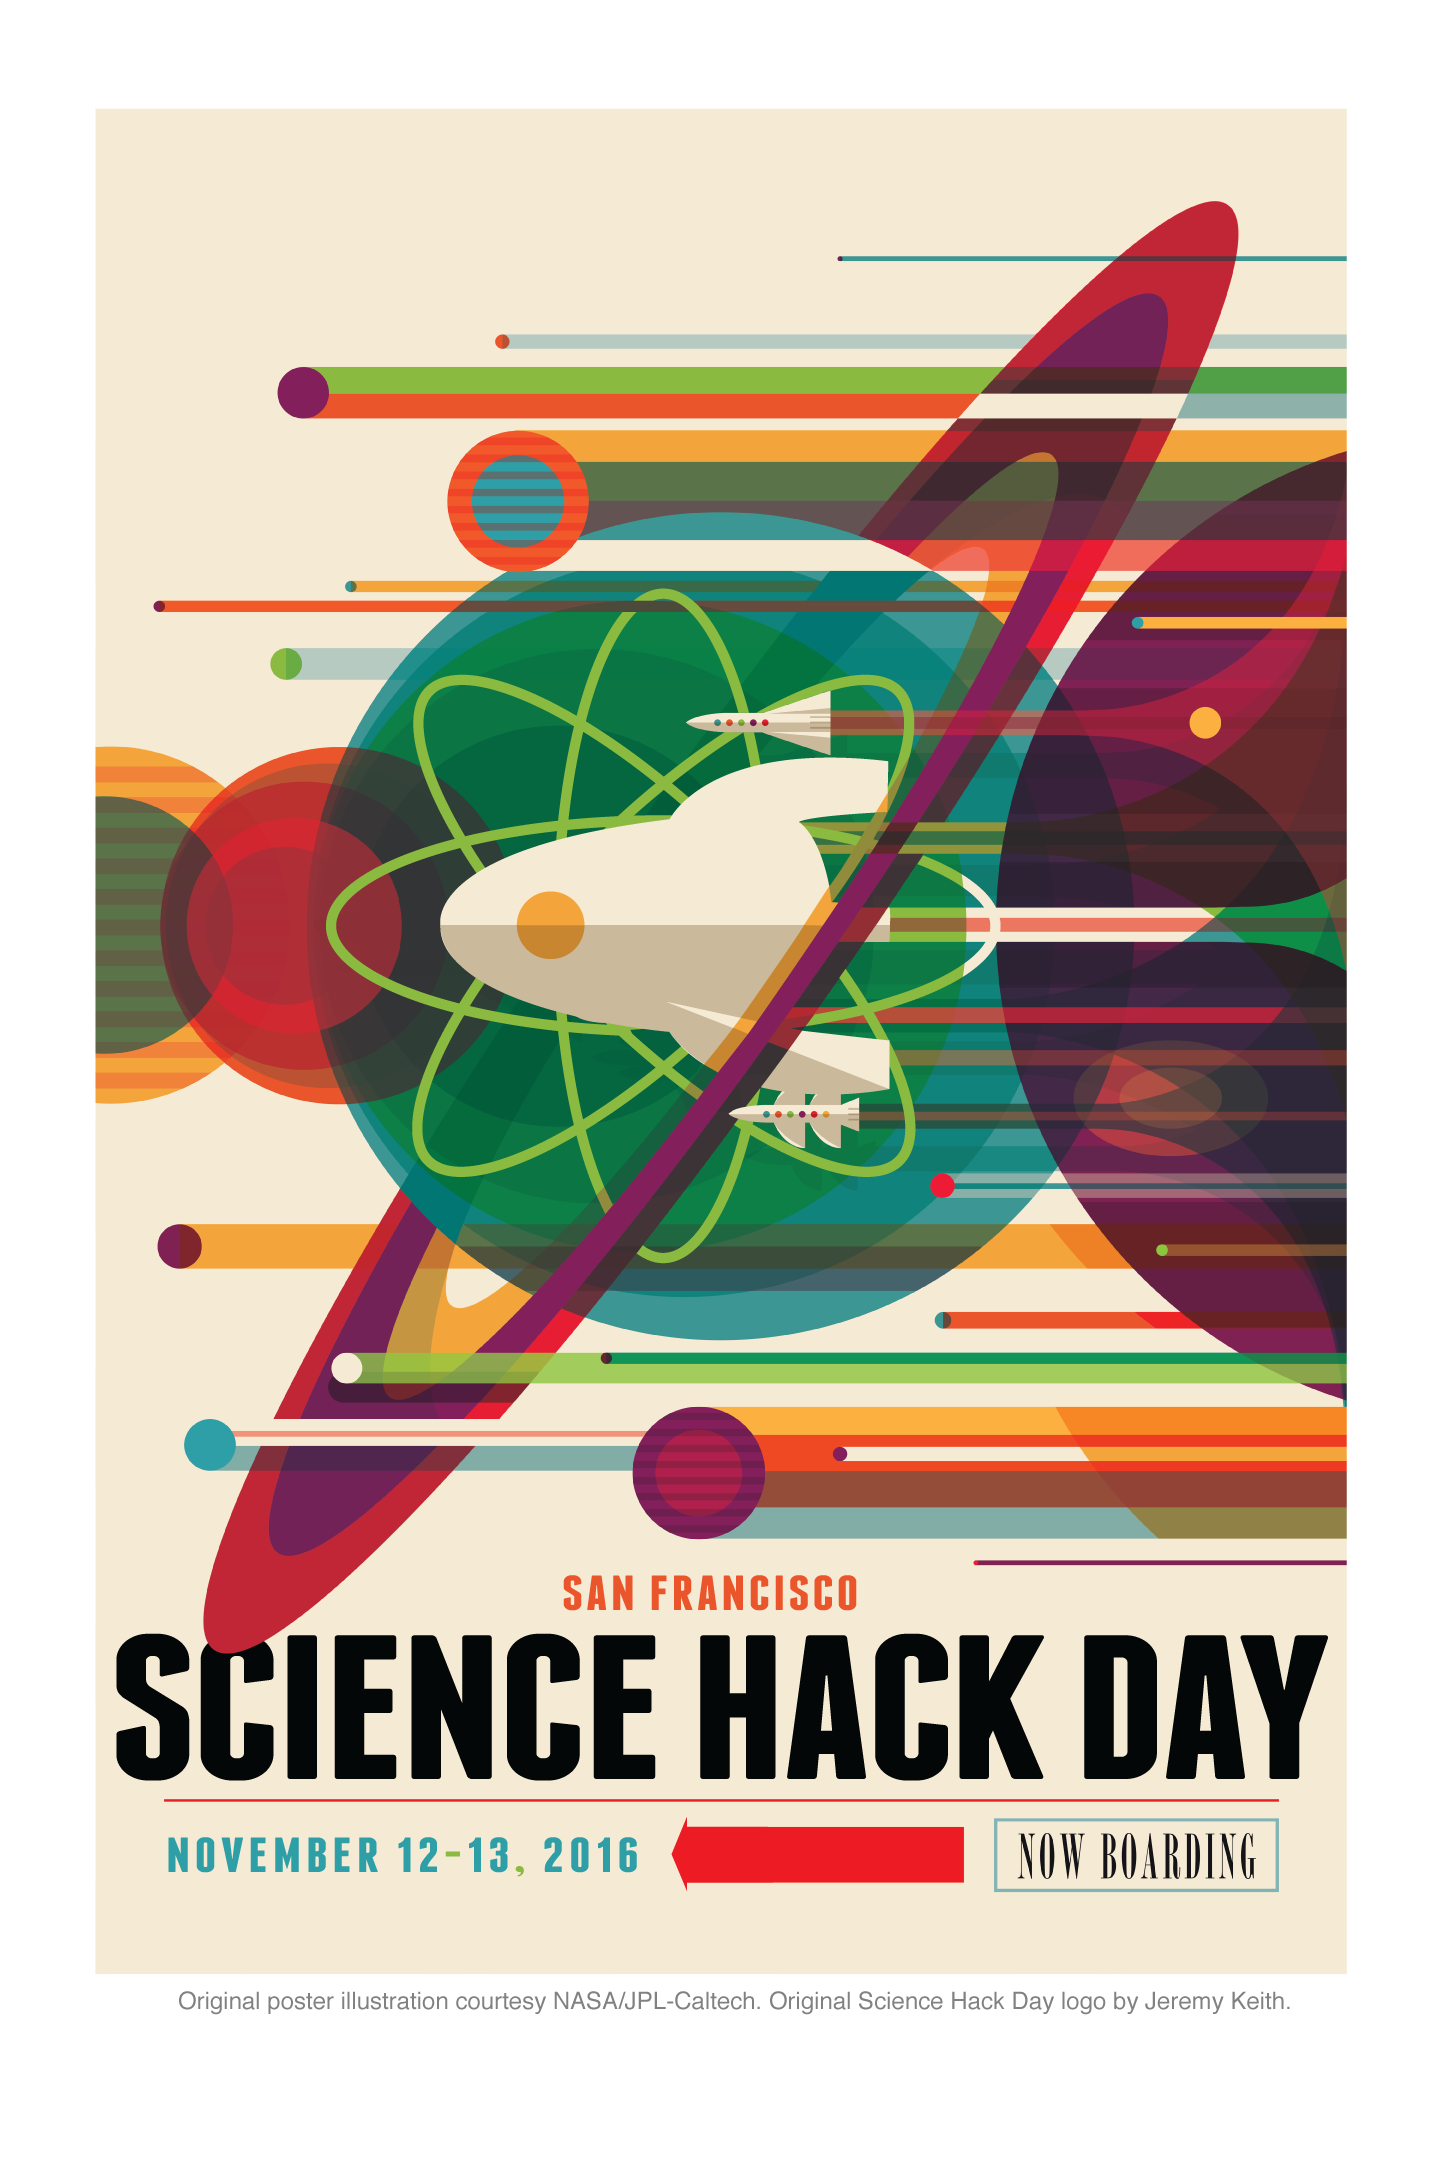 Science Hack Day interplanetary poster